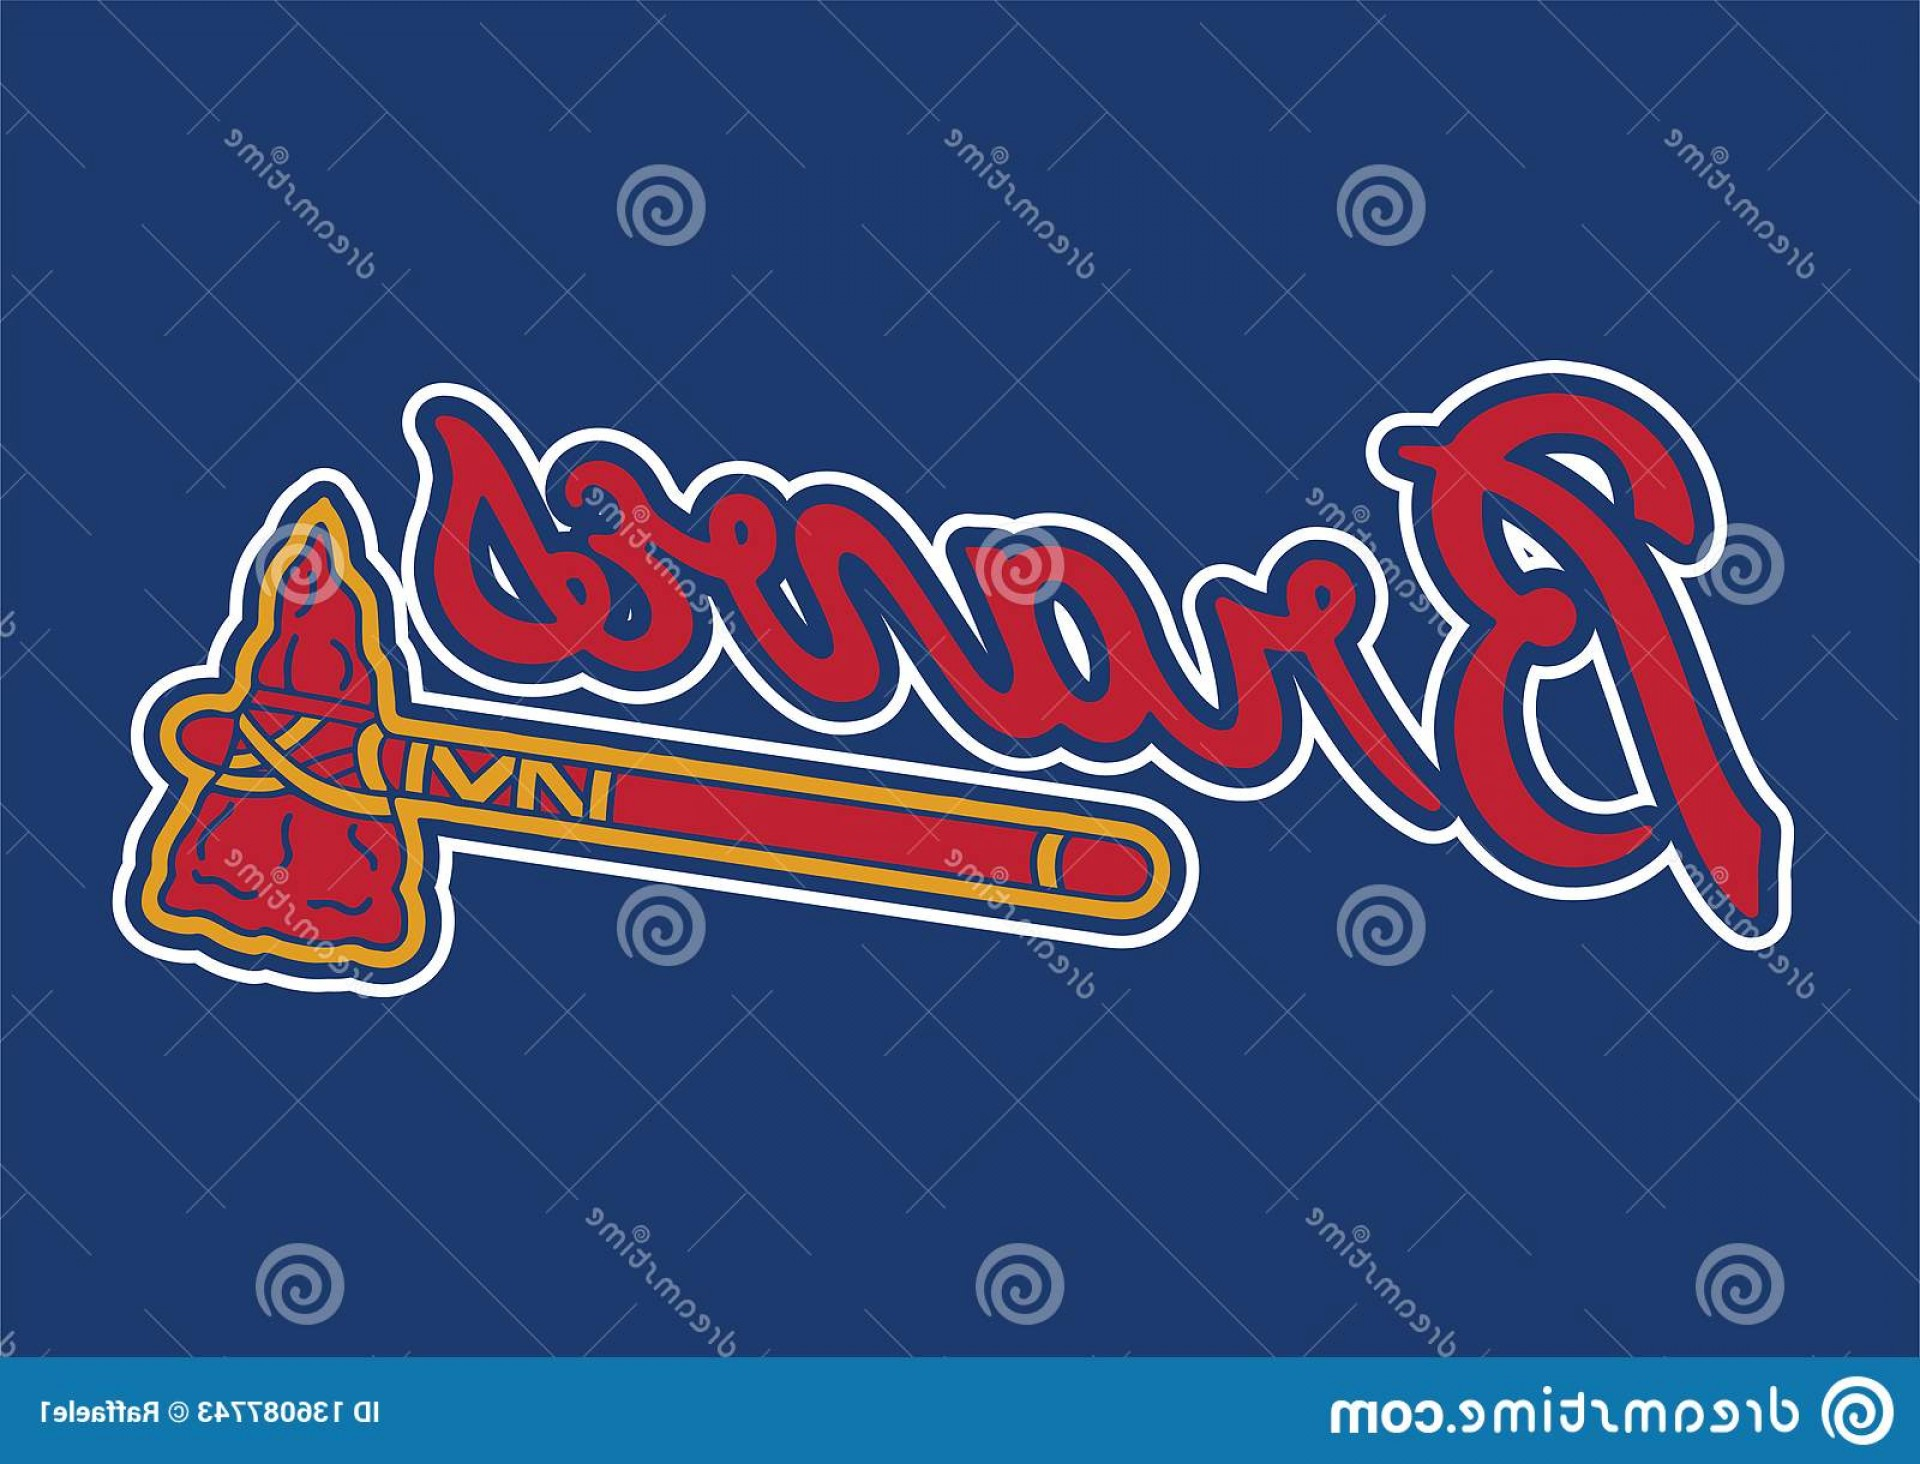 Braves Logo Vector: Collection Vector Logos Major League Baseball Teams Format Available Ai Illustrator Atlanta Braves Logo Image